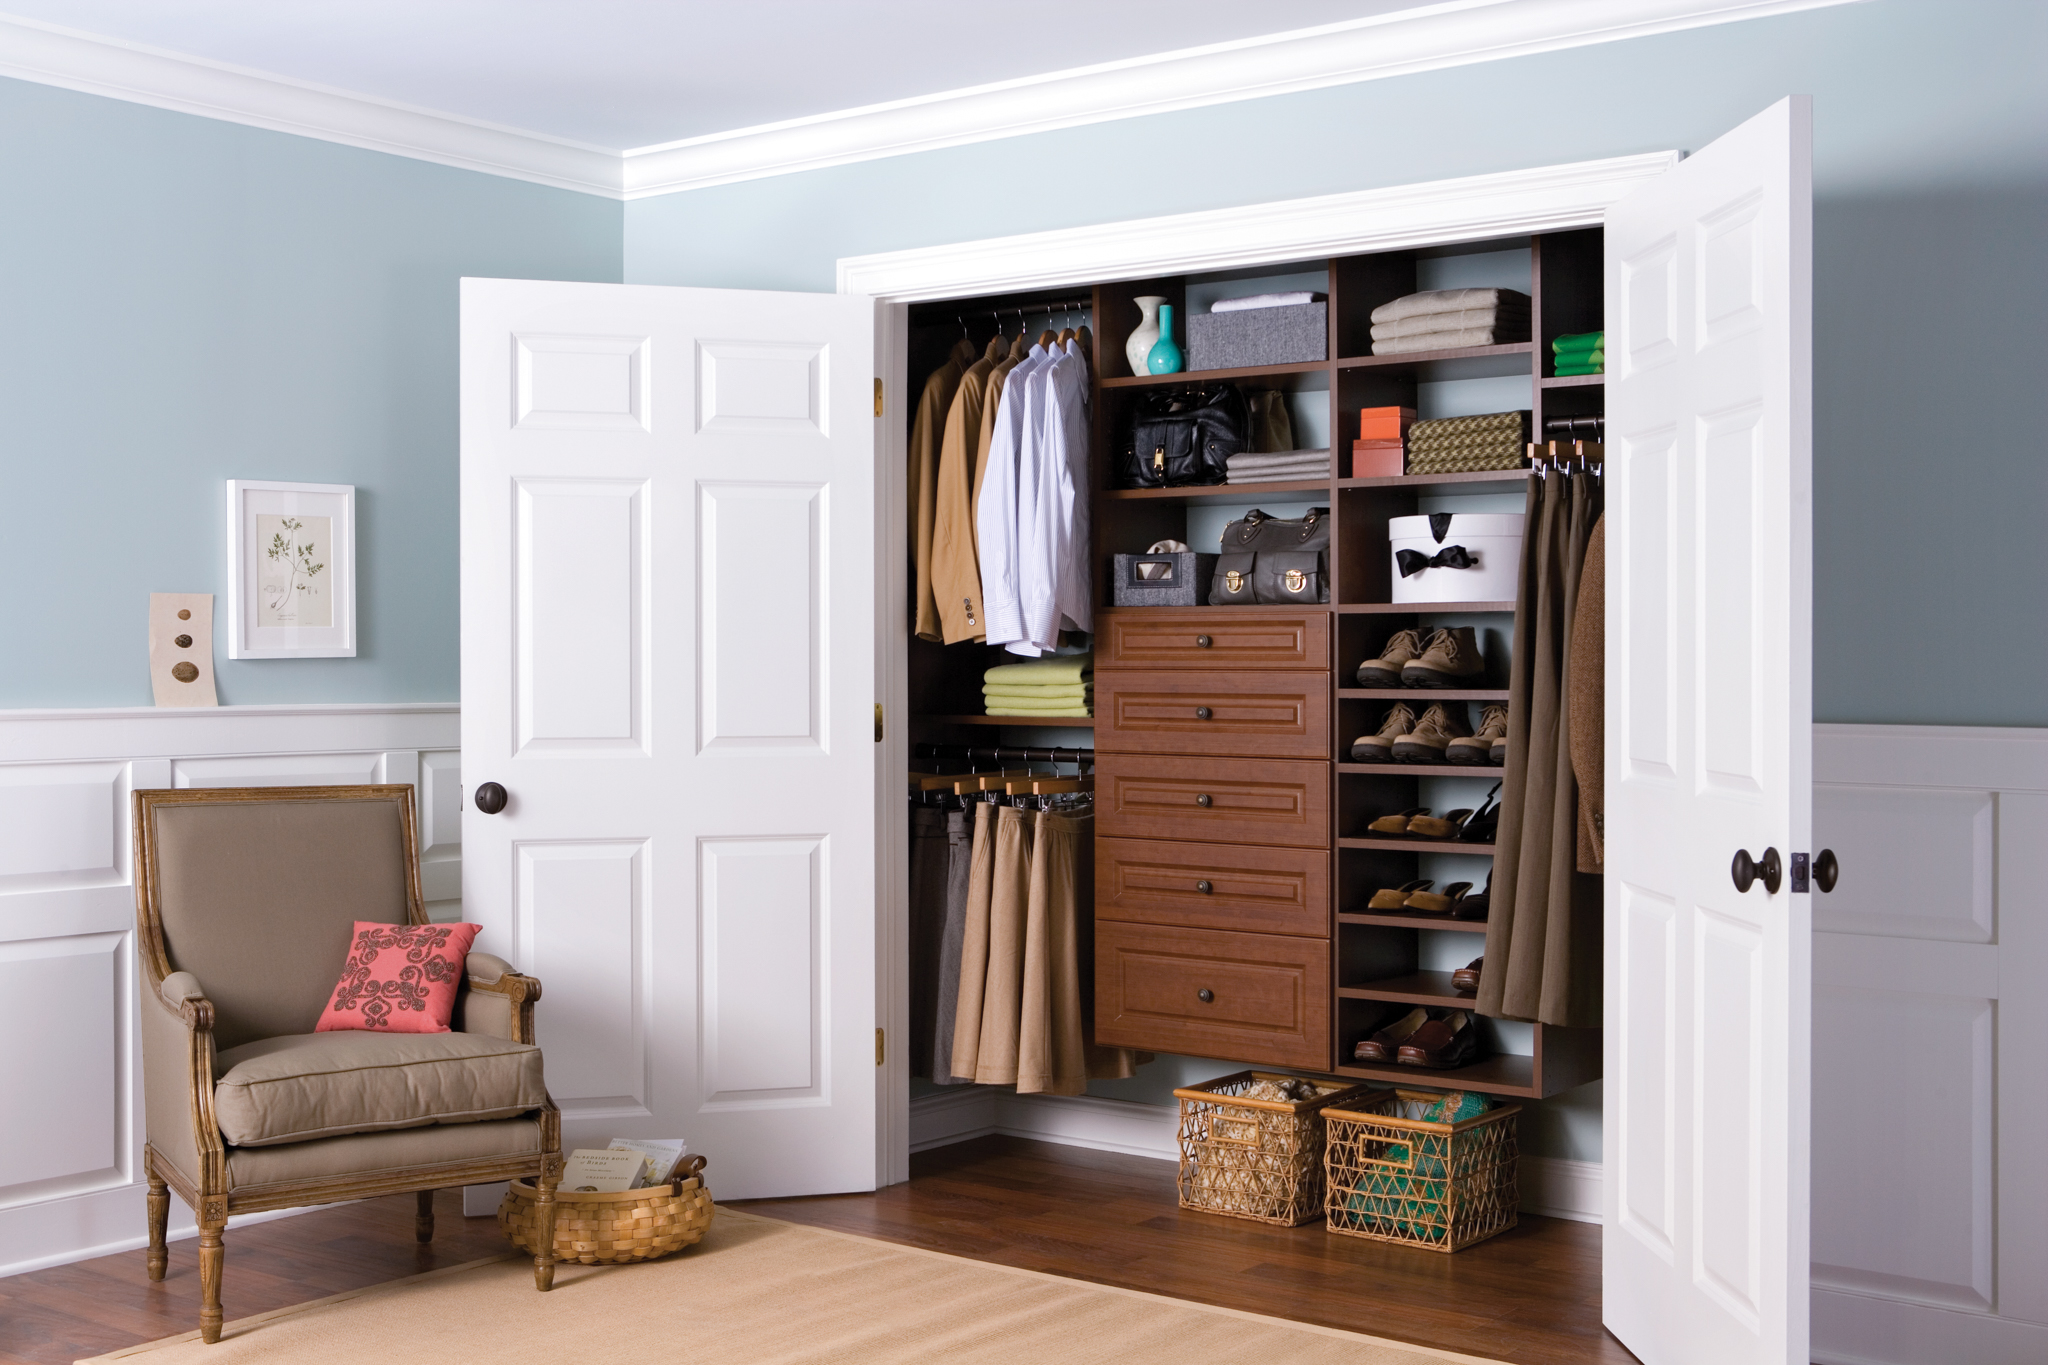 for storage com custom crop subsampling closets everything organization place easy a yourself it closet systems do ec